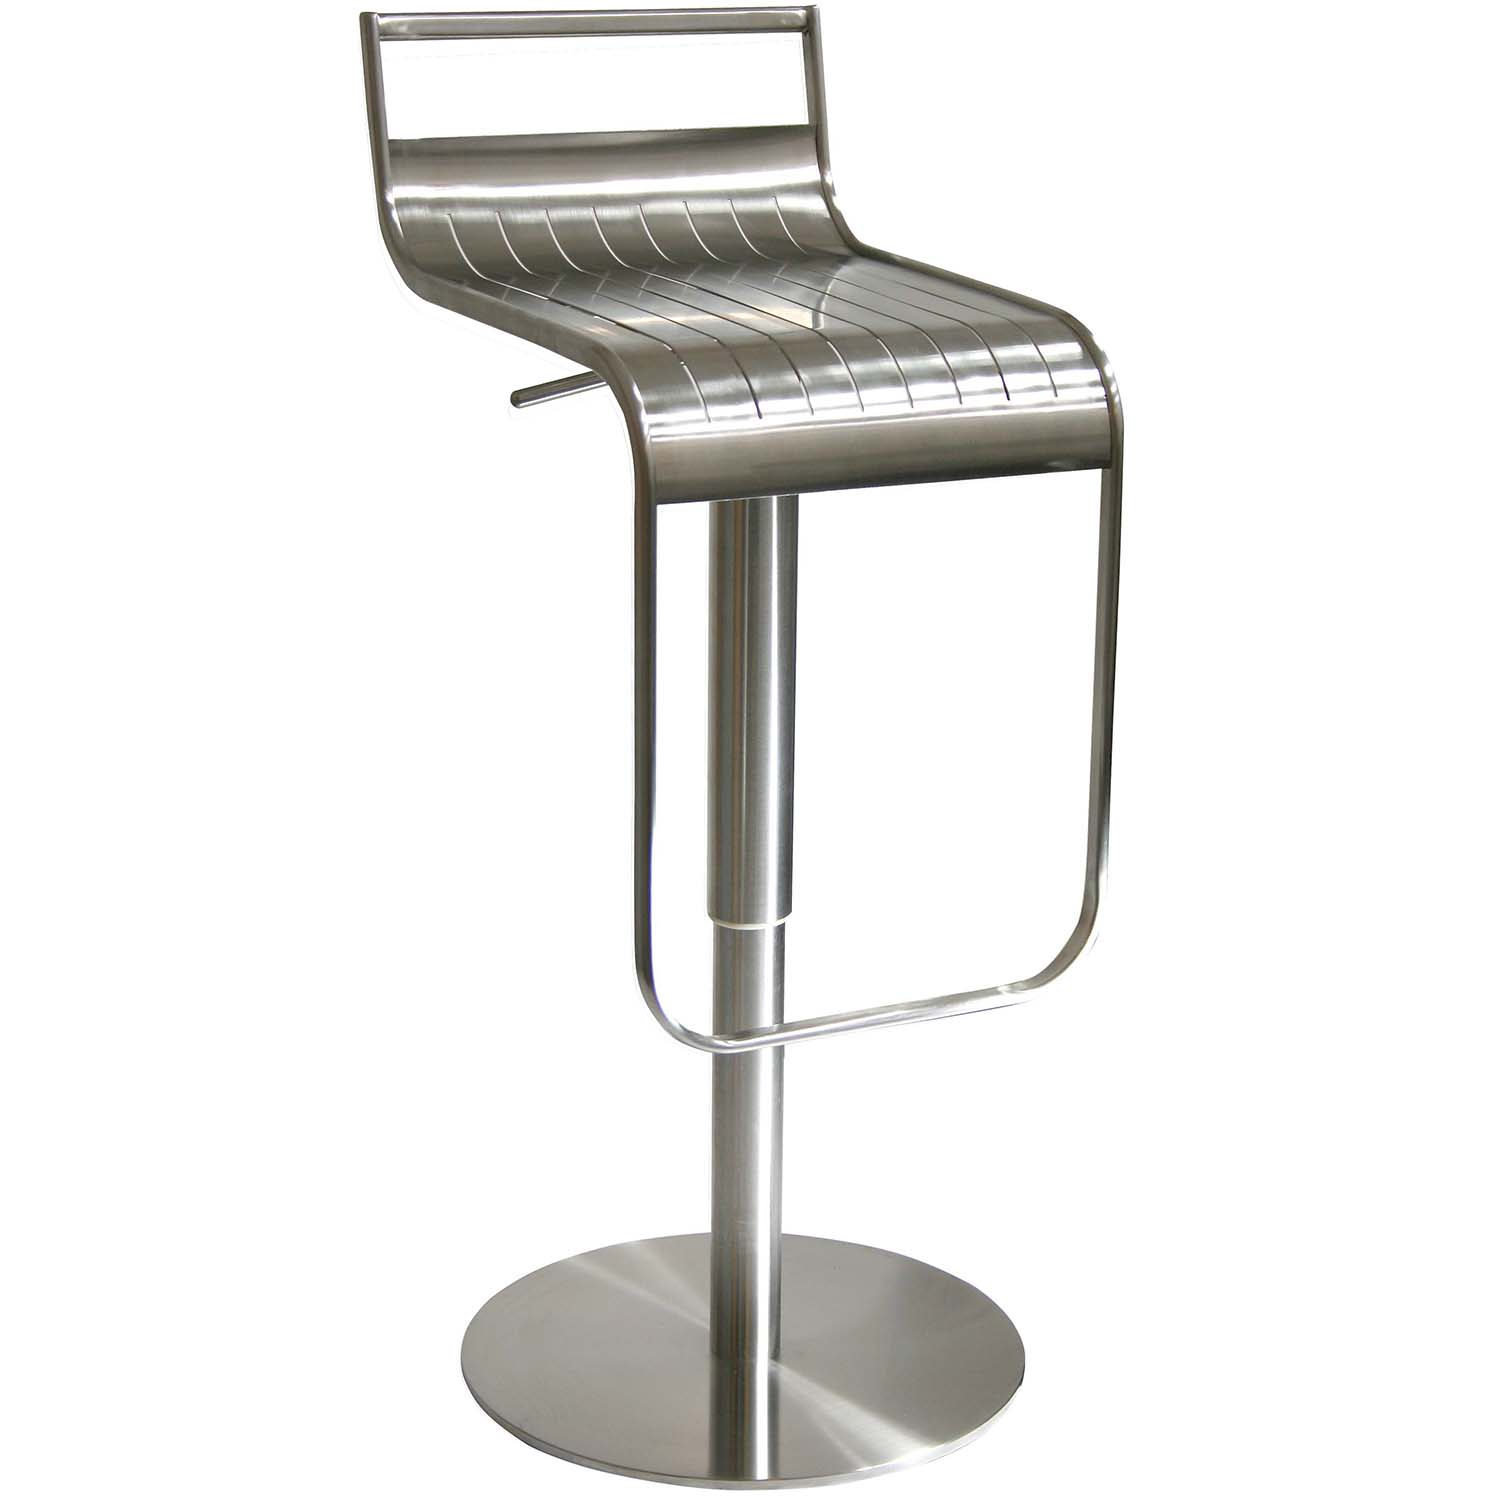 Stainless Bar Stools Bsss1 Amerihome Stainless Steel Bar Stool